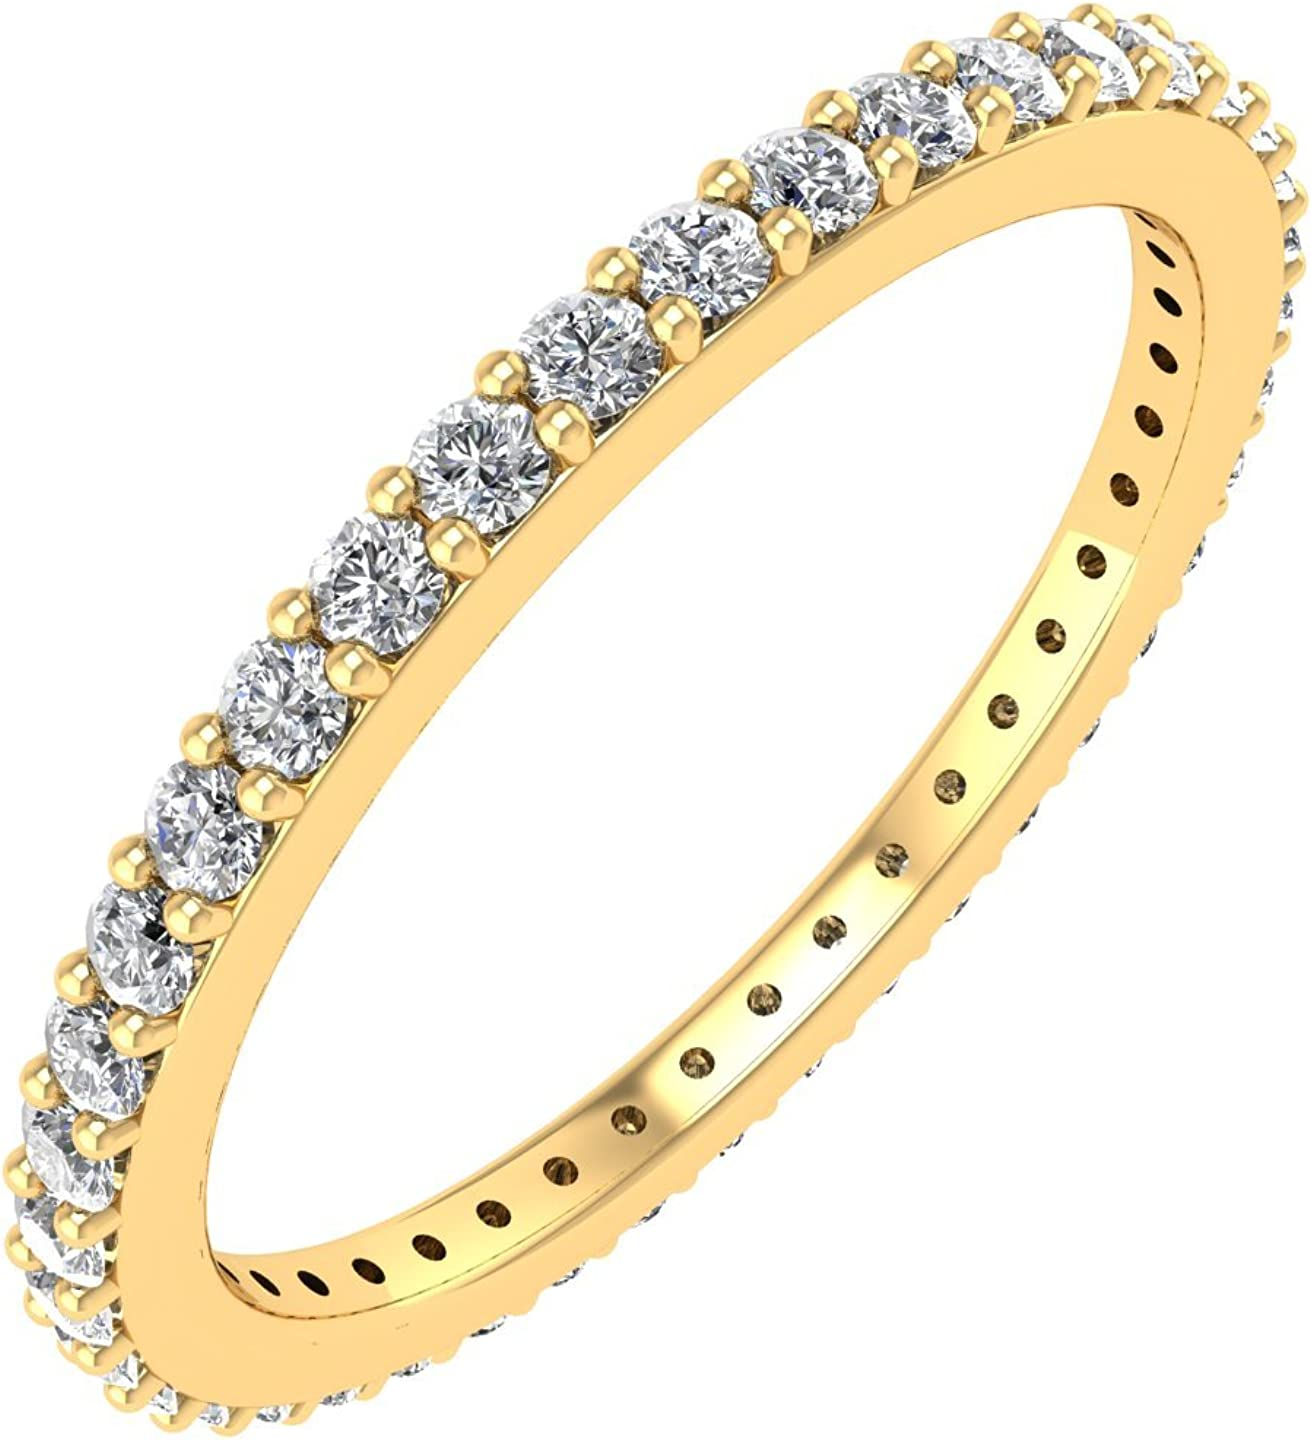 Round Diamond Ring Wedding Band Anniversary Ring Stackable Ring Promise Ring Beaded Diamond Band 14K Gold Diamond Ring